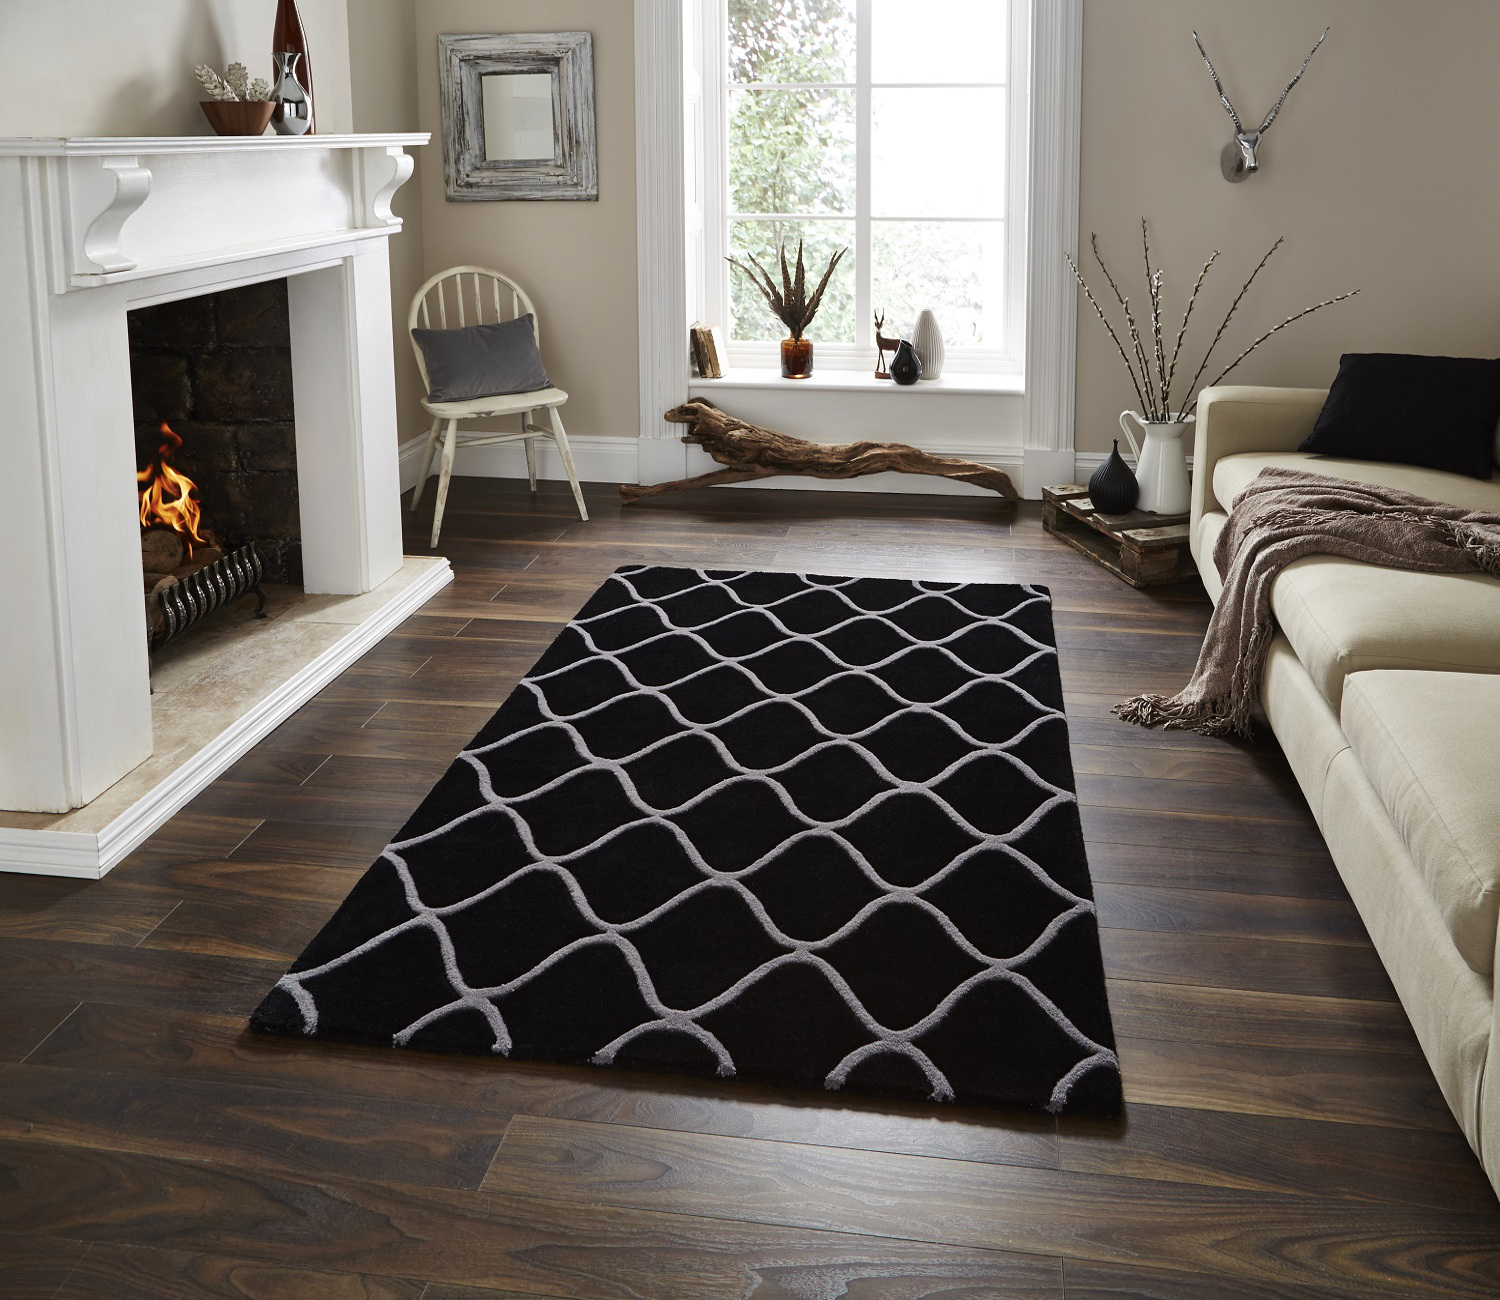 Wave Design Hand Tufted 100% Wool Rug Contemporary Home